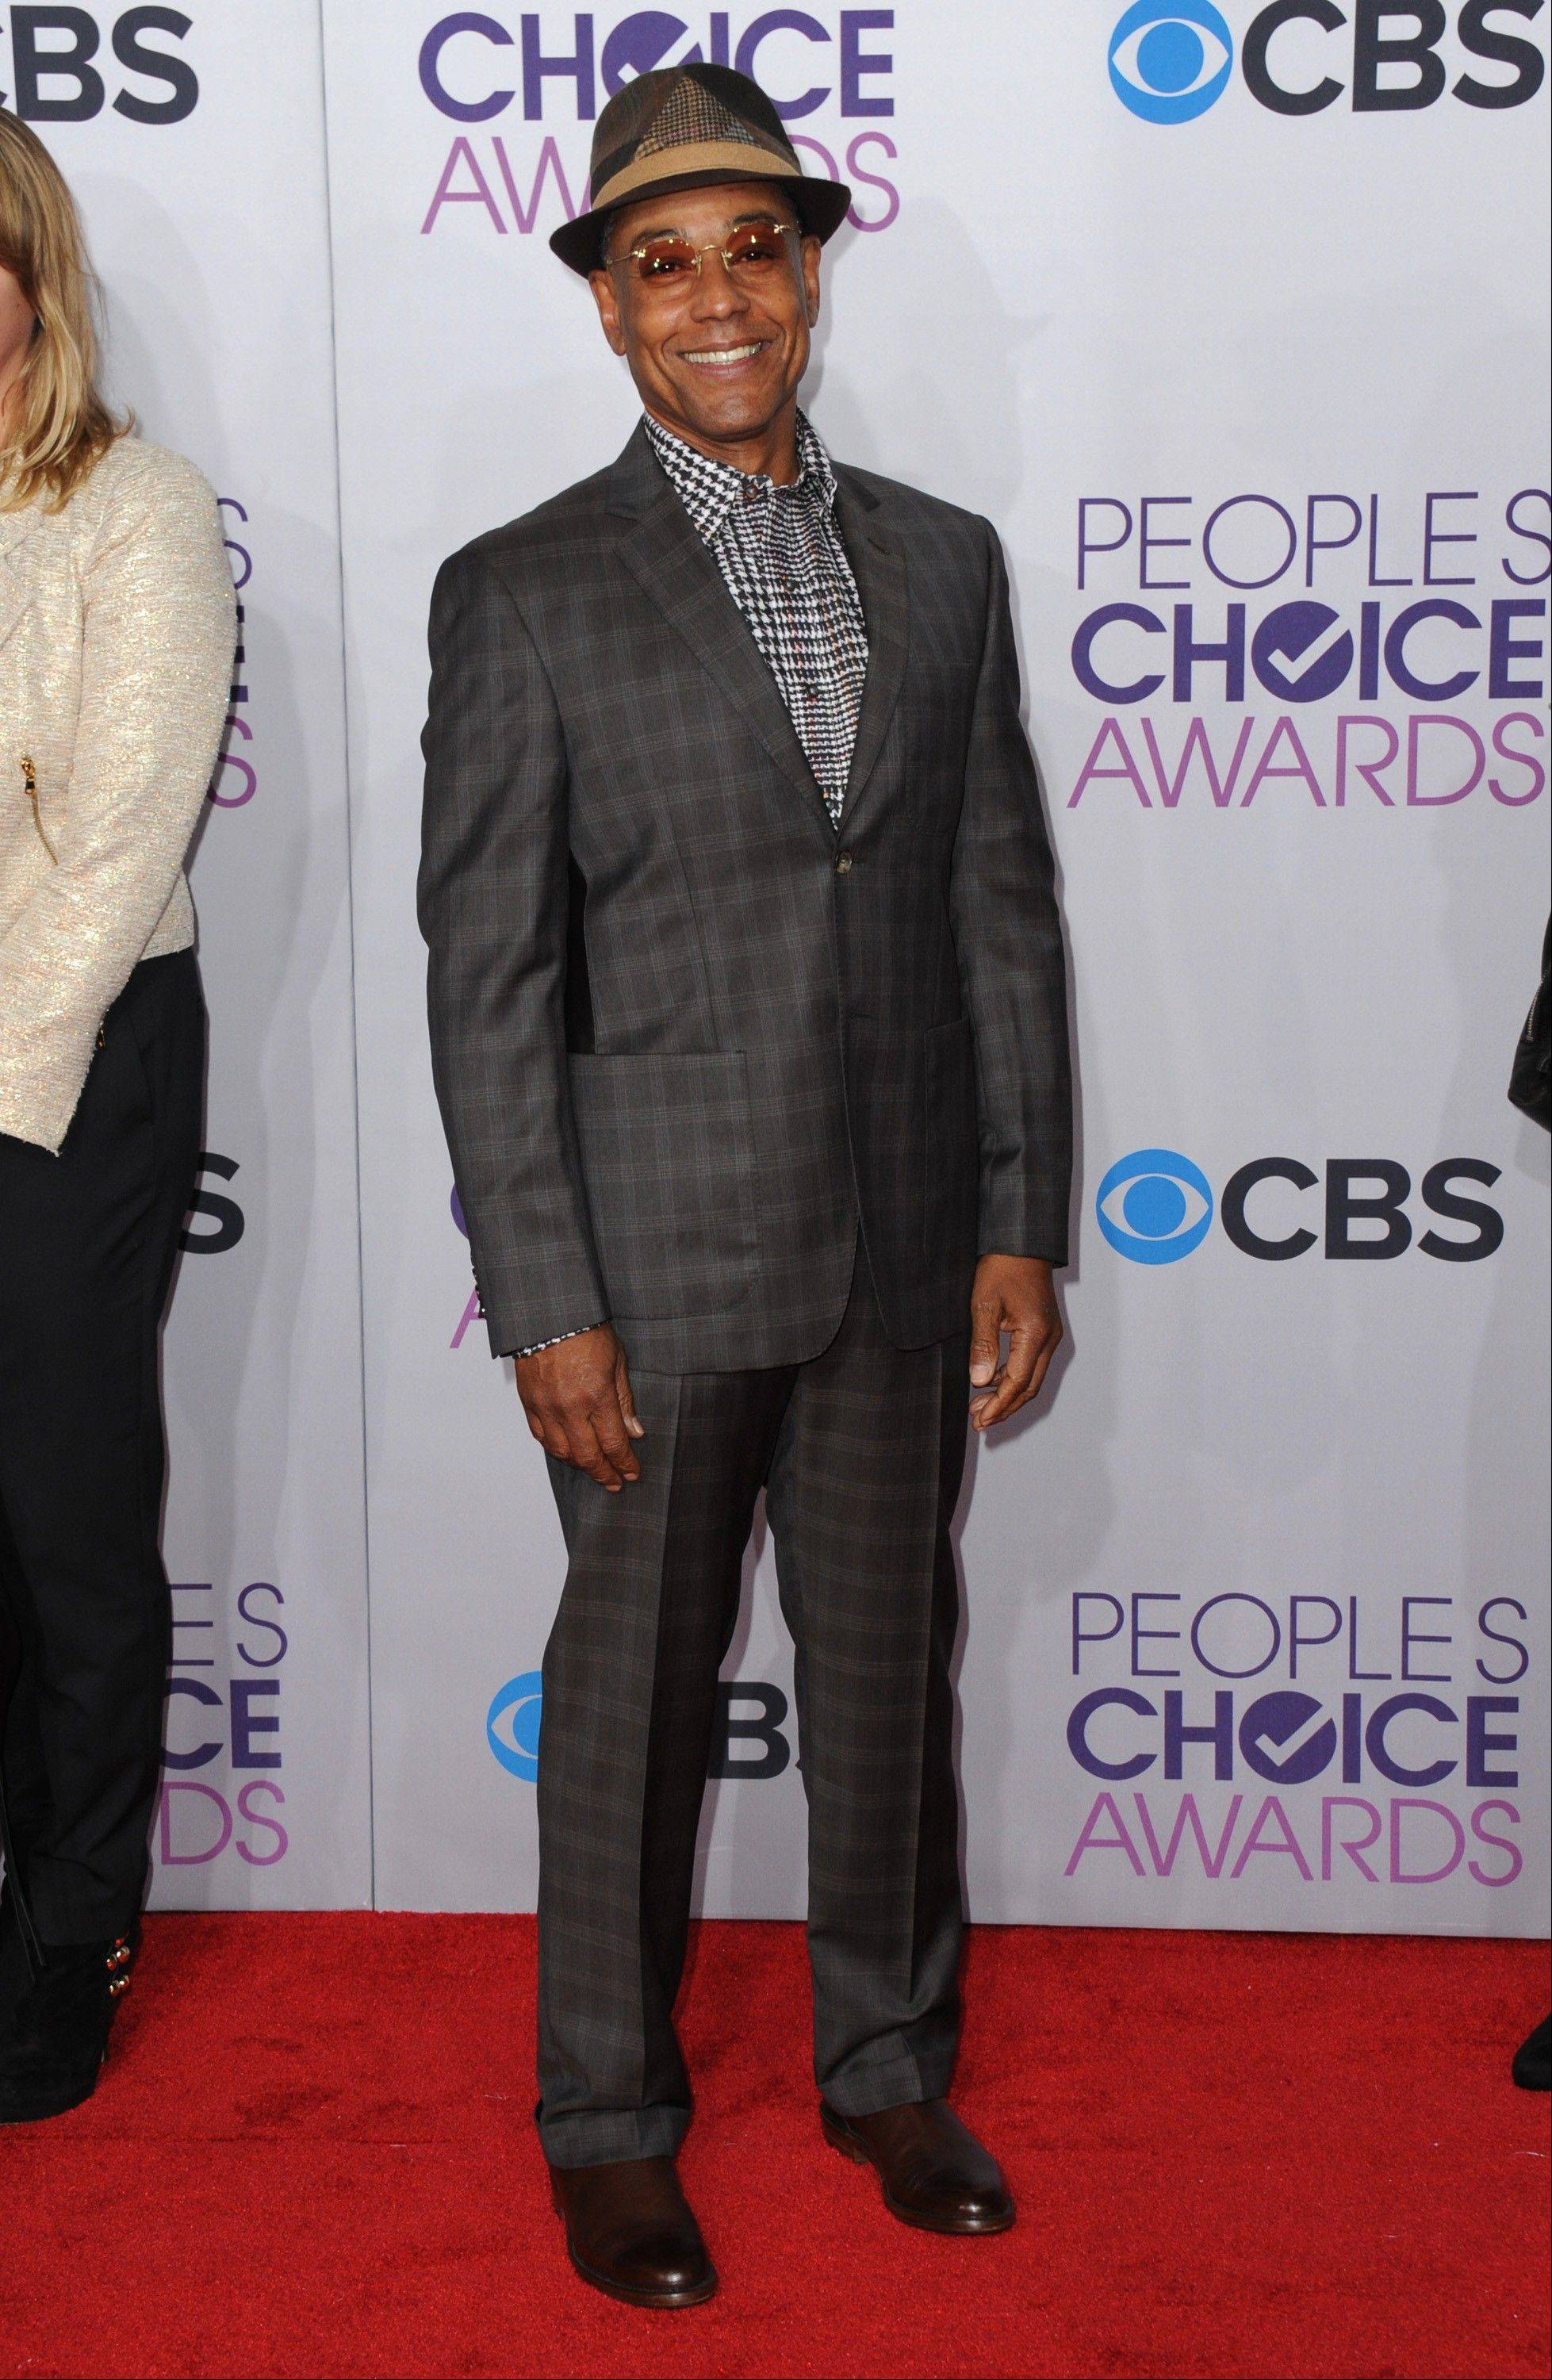 Giancarlo Esposito arrives at the People's Choice Awards at the Nokia Theatre on Wednesday Jan. 9, 2013, in Los Angeles.